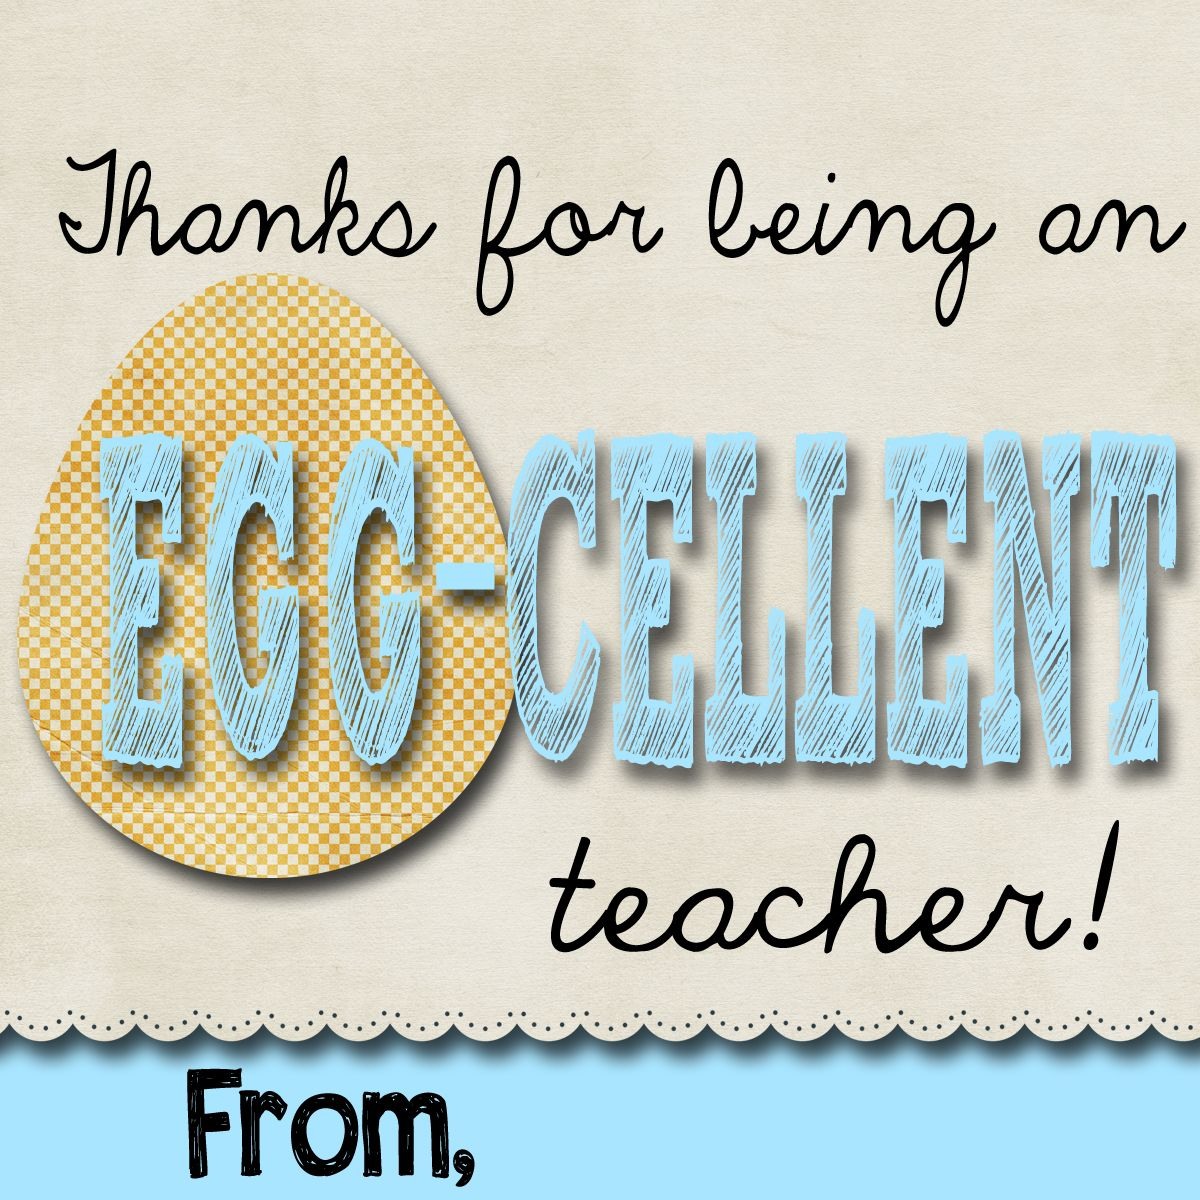 Easterspring gift idea for teachers with free download easterspring gift idea for teachers with free download negle Choice Image